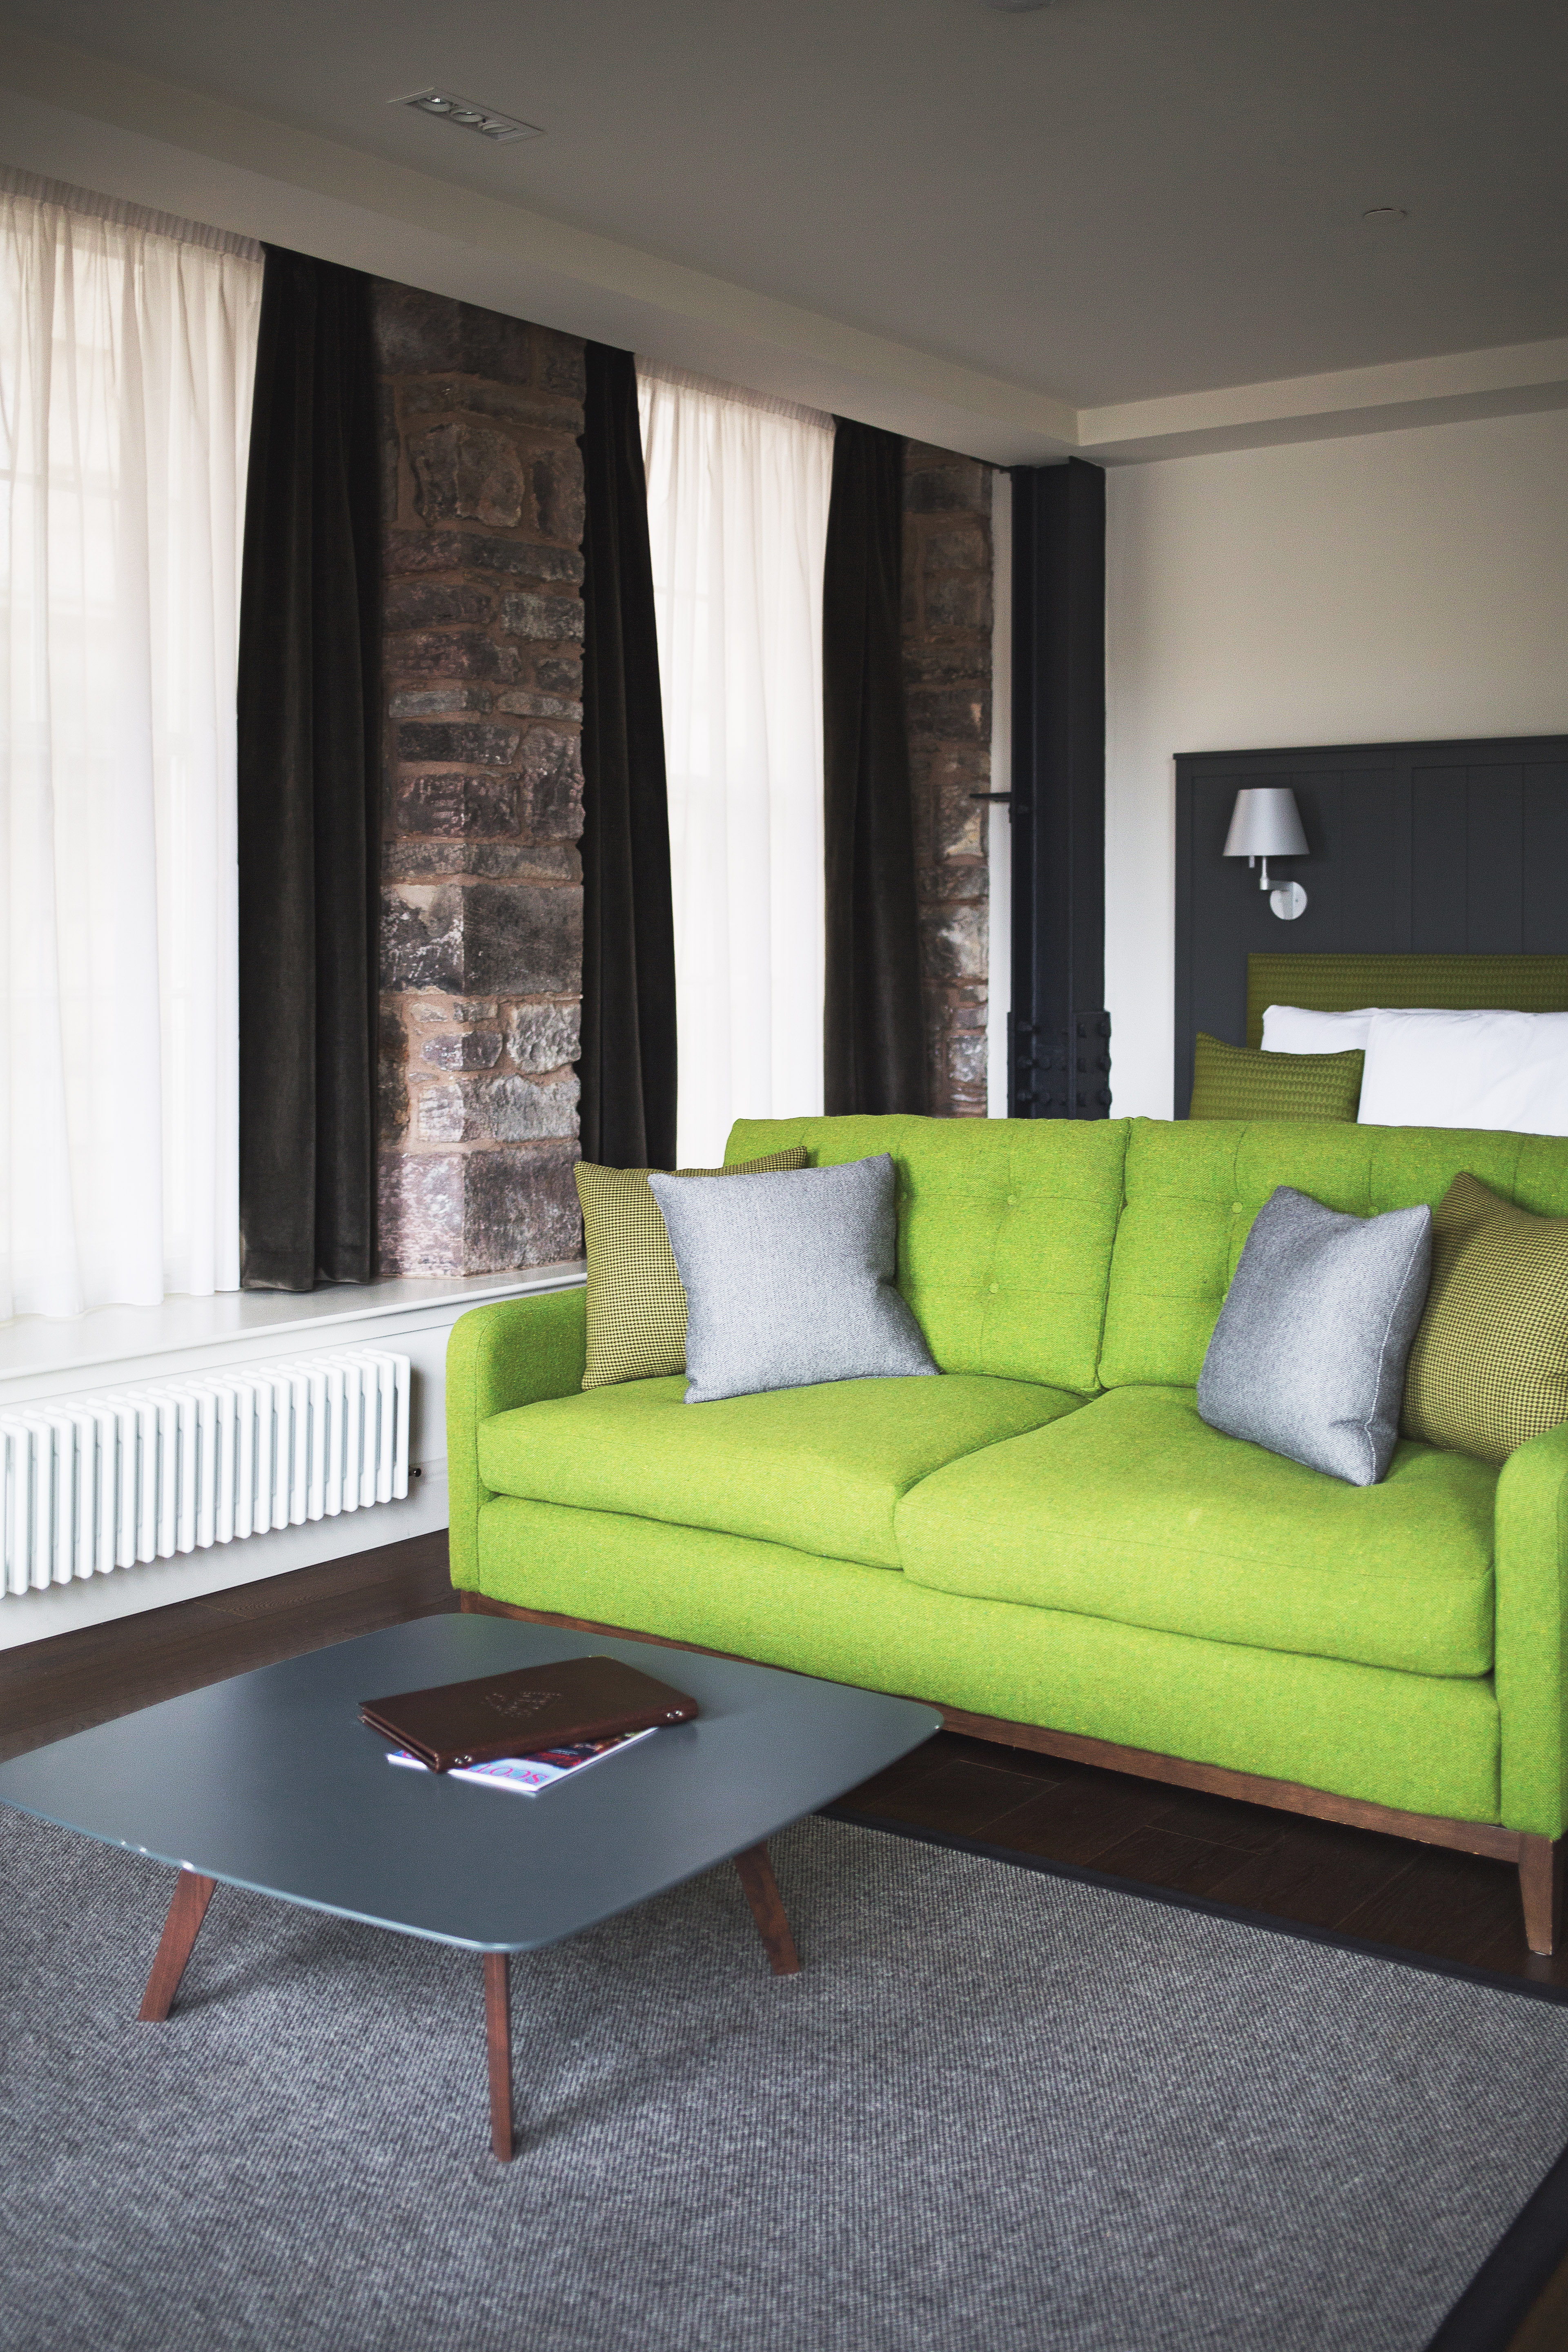 Edinburgh Stay at the Old Town Chambers